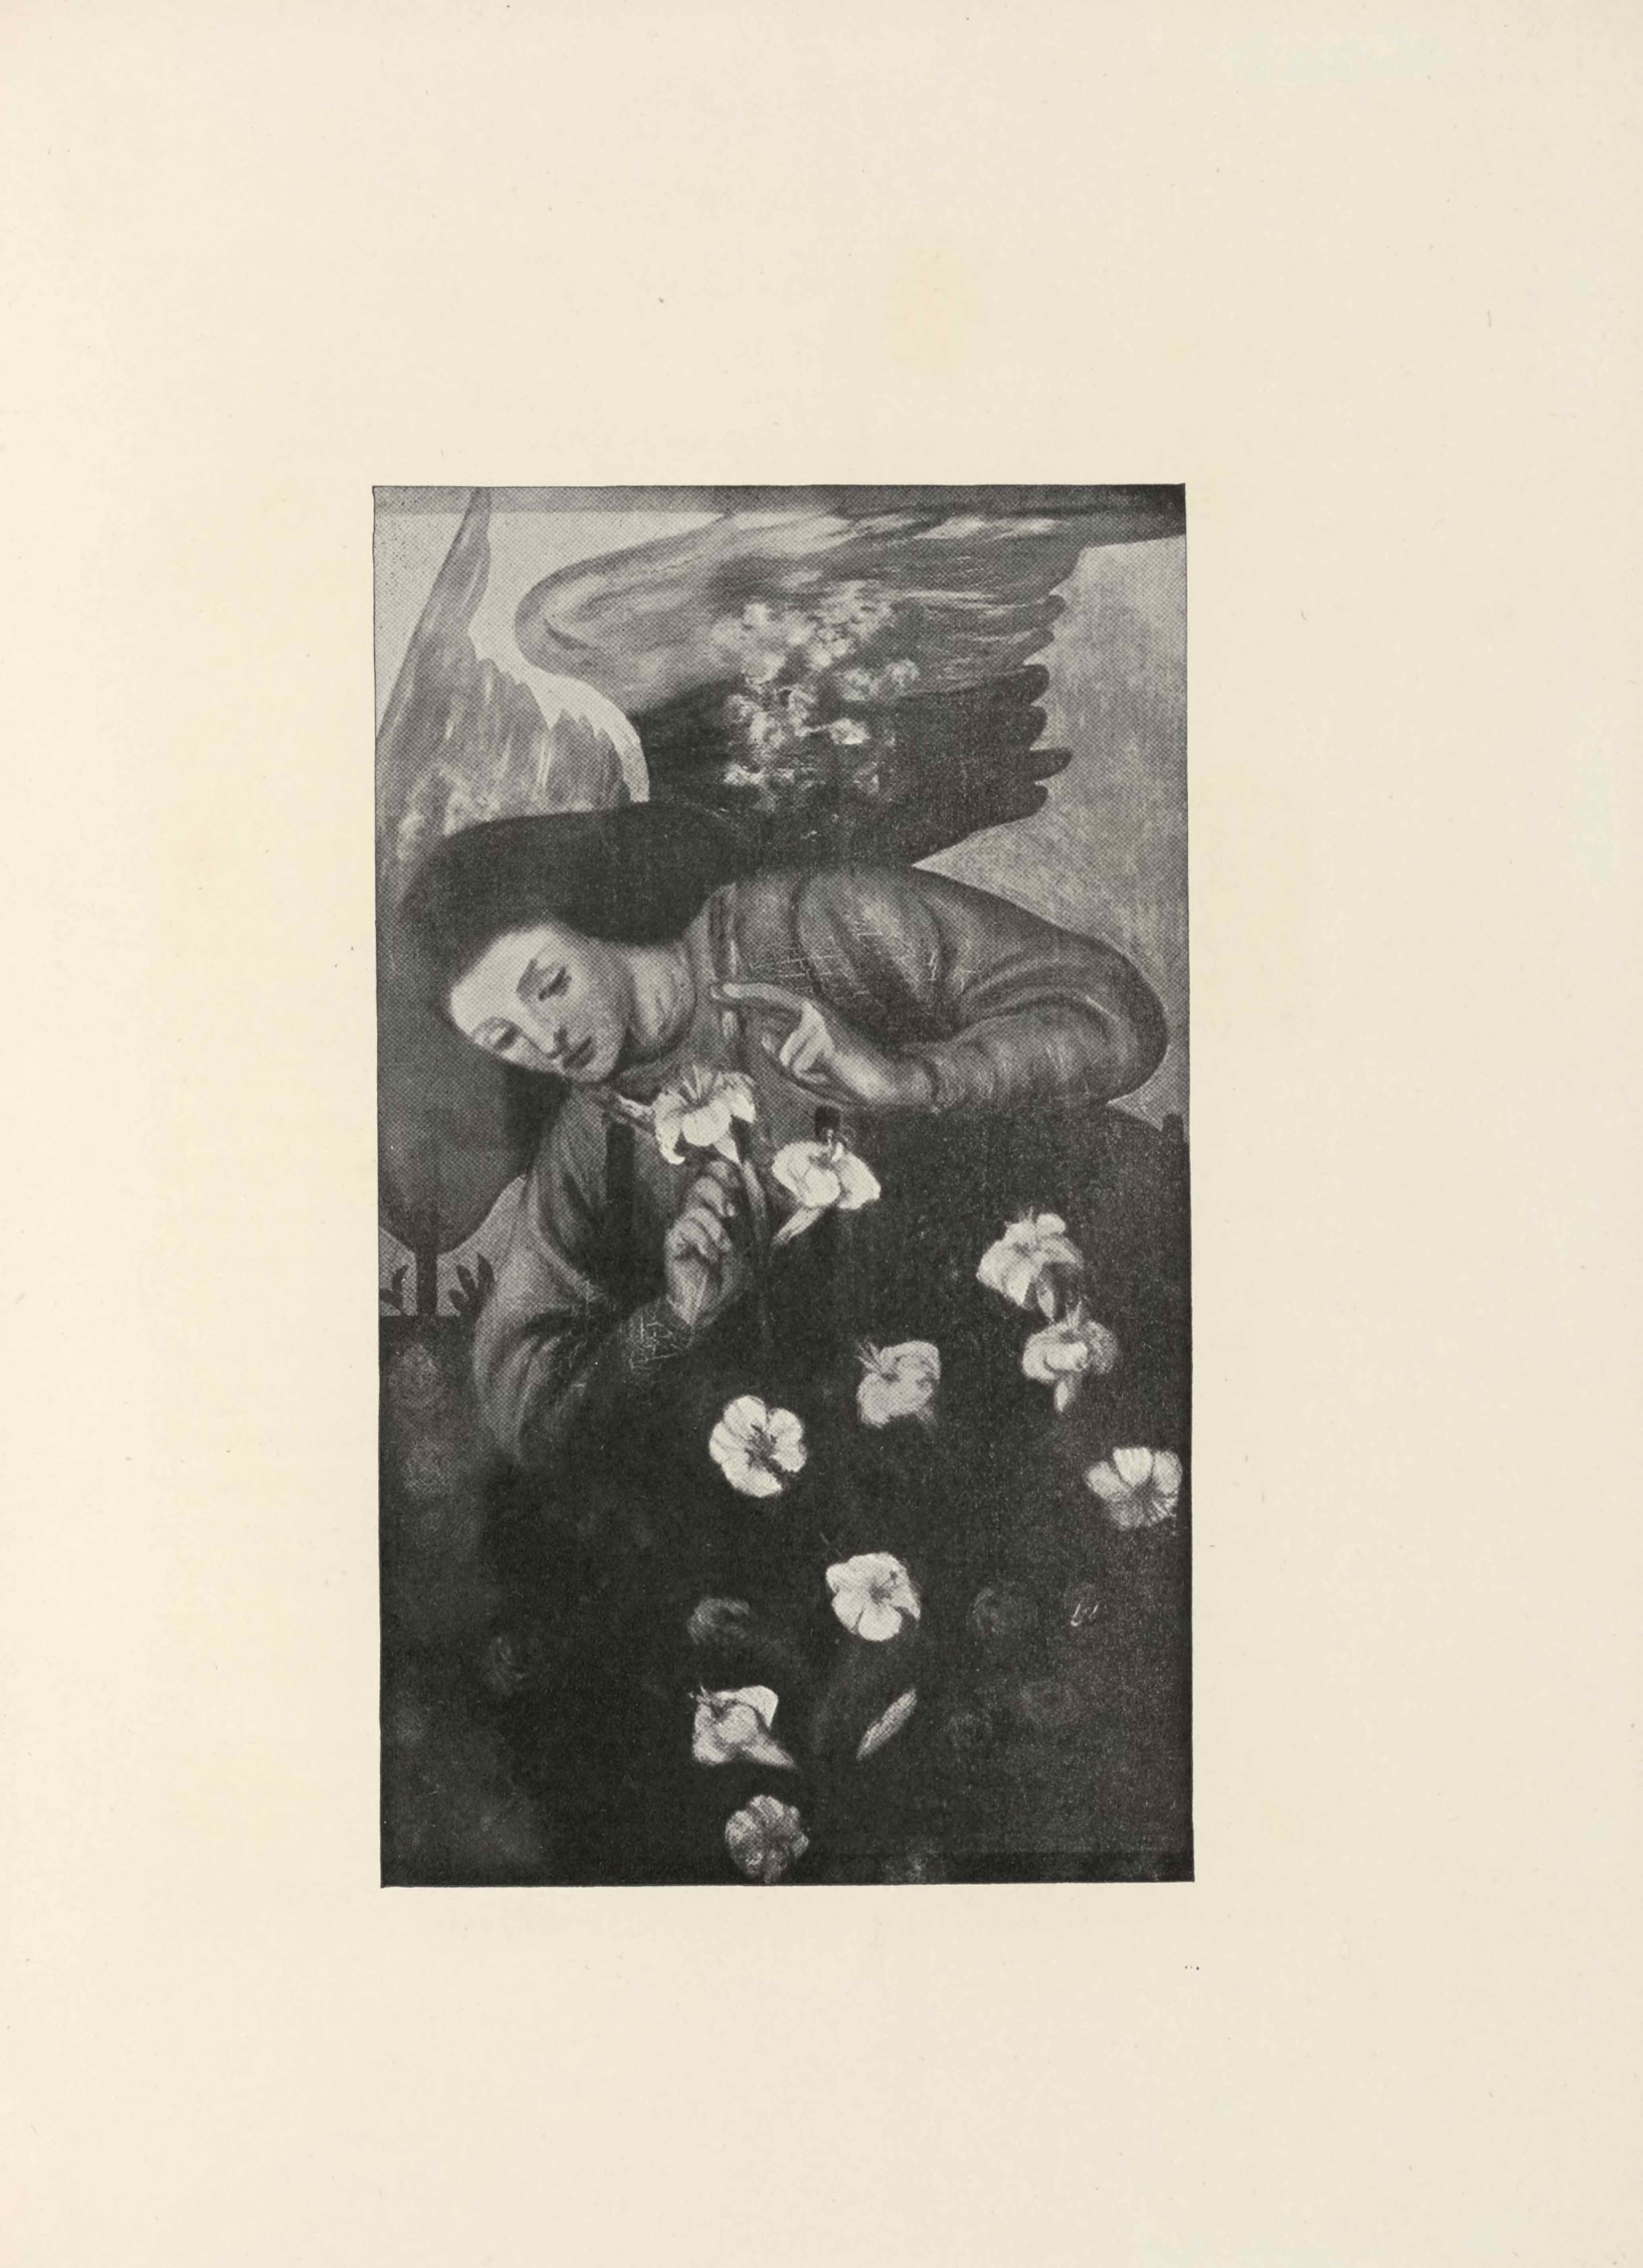 """The halftone reproduction of a pulpit panel painting by D. G. Rossetti is in portrait orientation, facing the essay it illustrates on """"The Stained Glass Windows and Decorative Paintings of the Church of St-Martins-on-the-Hill, Scarborough."""" A winged figure or angel is looking down. The figure is depicted holding a white lily in their right hand and pointing the index finger of their left; the wings take up the top left corner of the page. The tops of the wings are painted lighter than the bottoms, grey instead of black. The angel has black hair extending past the shoulders and out of sight. The angel wears a long-sleeved dress or robe, the top half of which is clearly defined in grey. The bottom half of is black. Eight lilies are spread out on the bottom of the dress, contrasting the black clothing. The sky in the background is a light grey. Far in the background at the left edge of the picture behind the angel's shoulder there is a wall with a curved top that extends up and out of sight behind the the angel. There is a narrow gap in the wall. This image is one of a pair of complementary painted panels depicting the scene of Mary's Annunciation."""